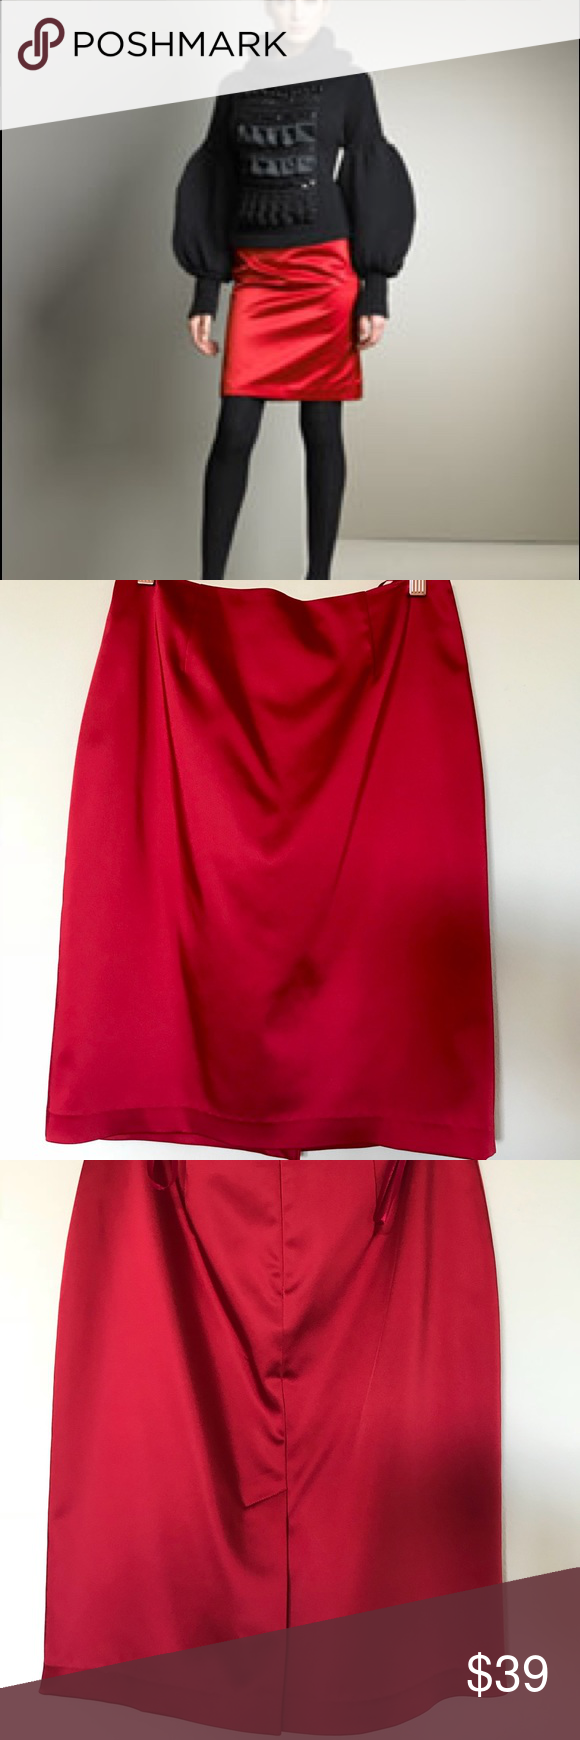 ad118c7a55 RED SATIN PENCIL SKIRT NWOT Luxury satin skirt, fully lined, NWOT, very  high quality fabric Aidan Mattox Skirts Midi